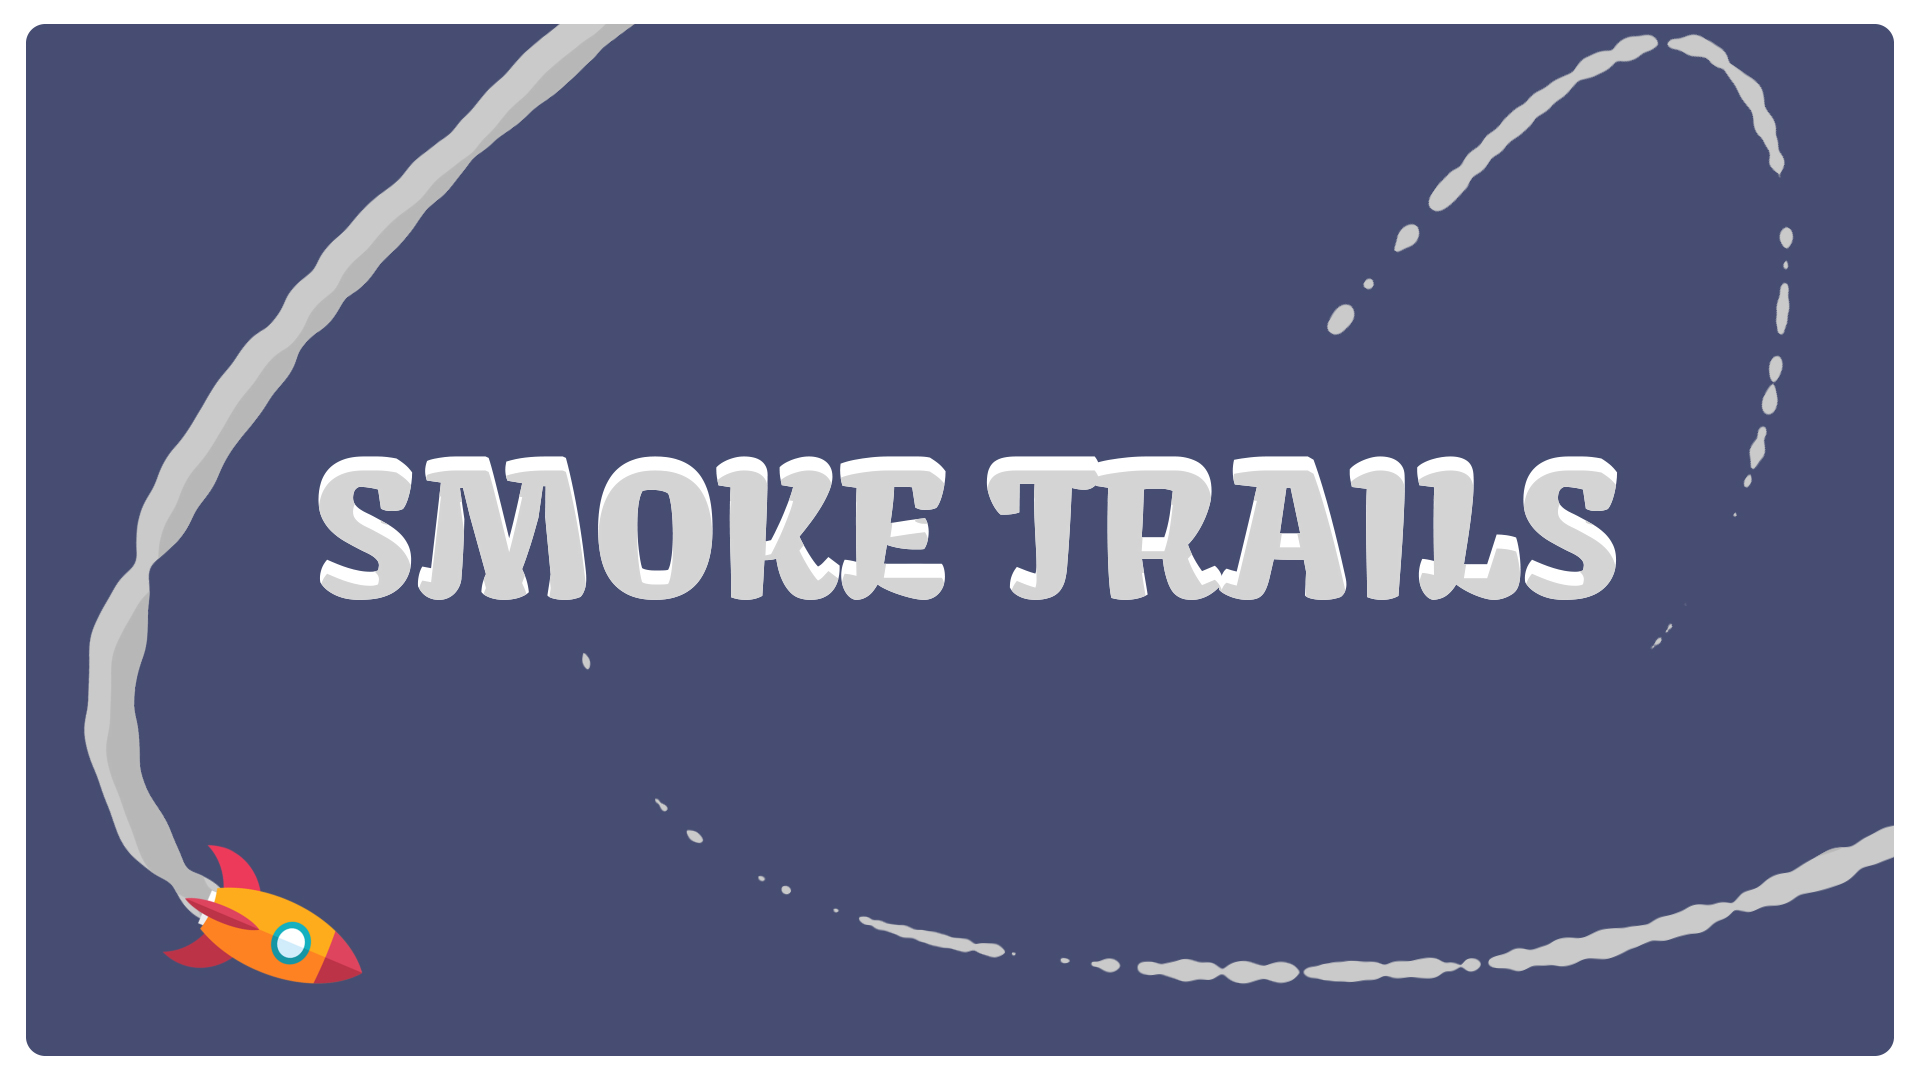 Smoke trails after effects